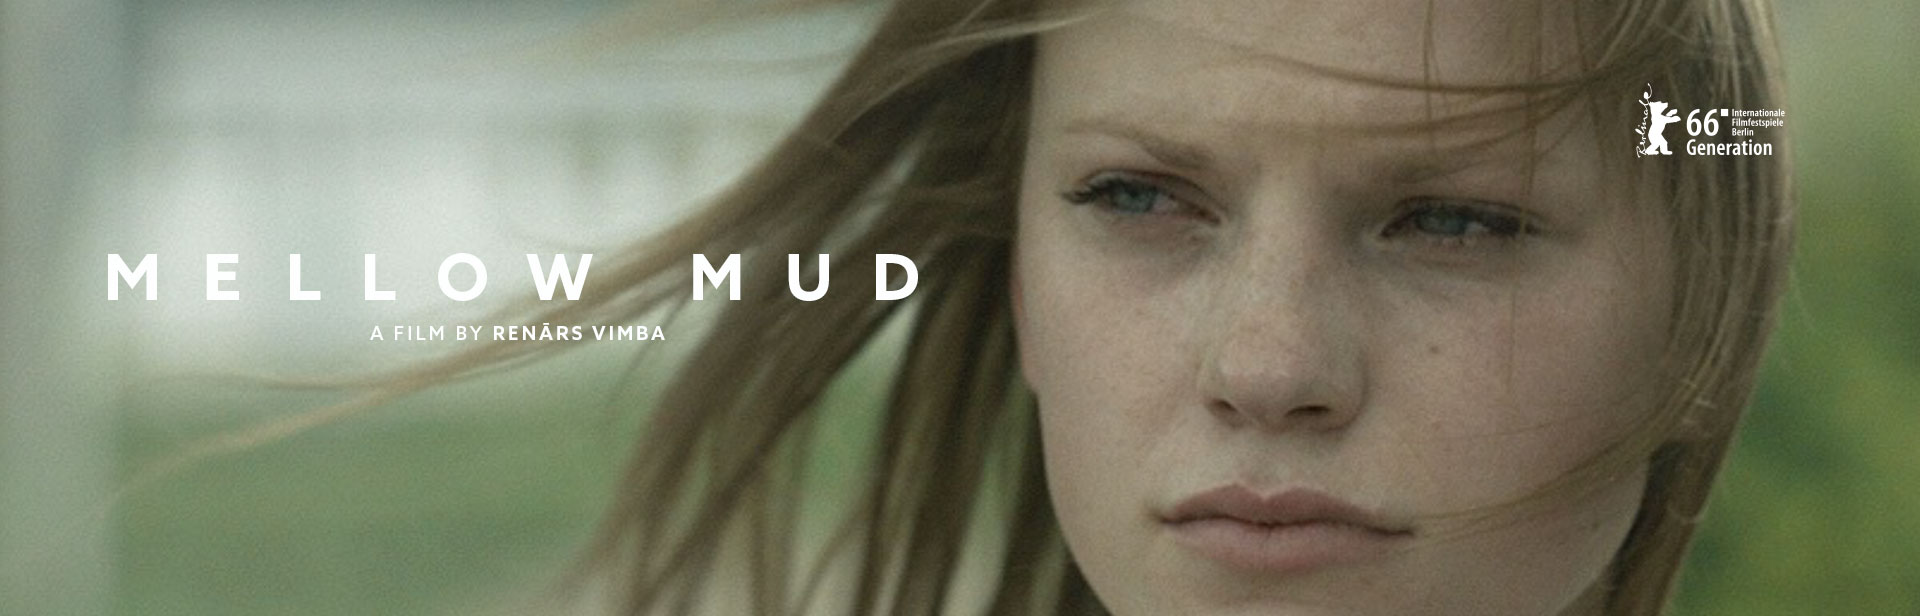 Mellow Mud banner